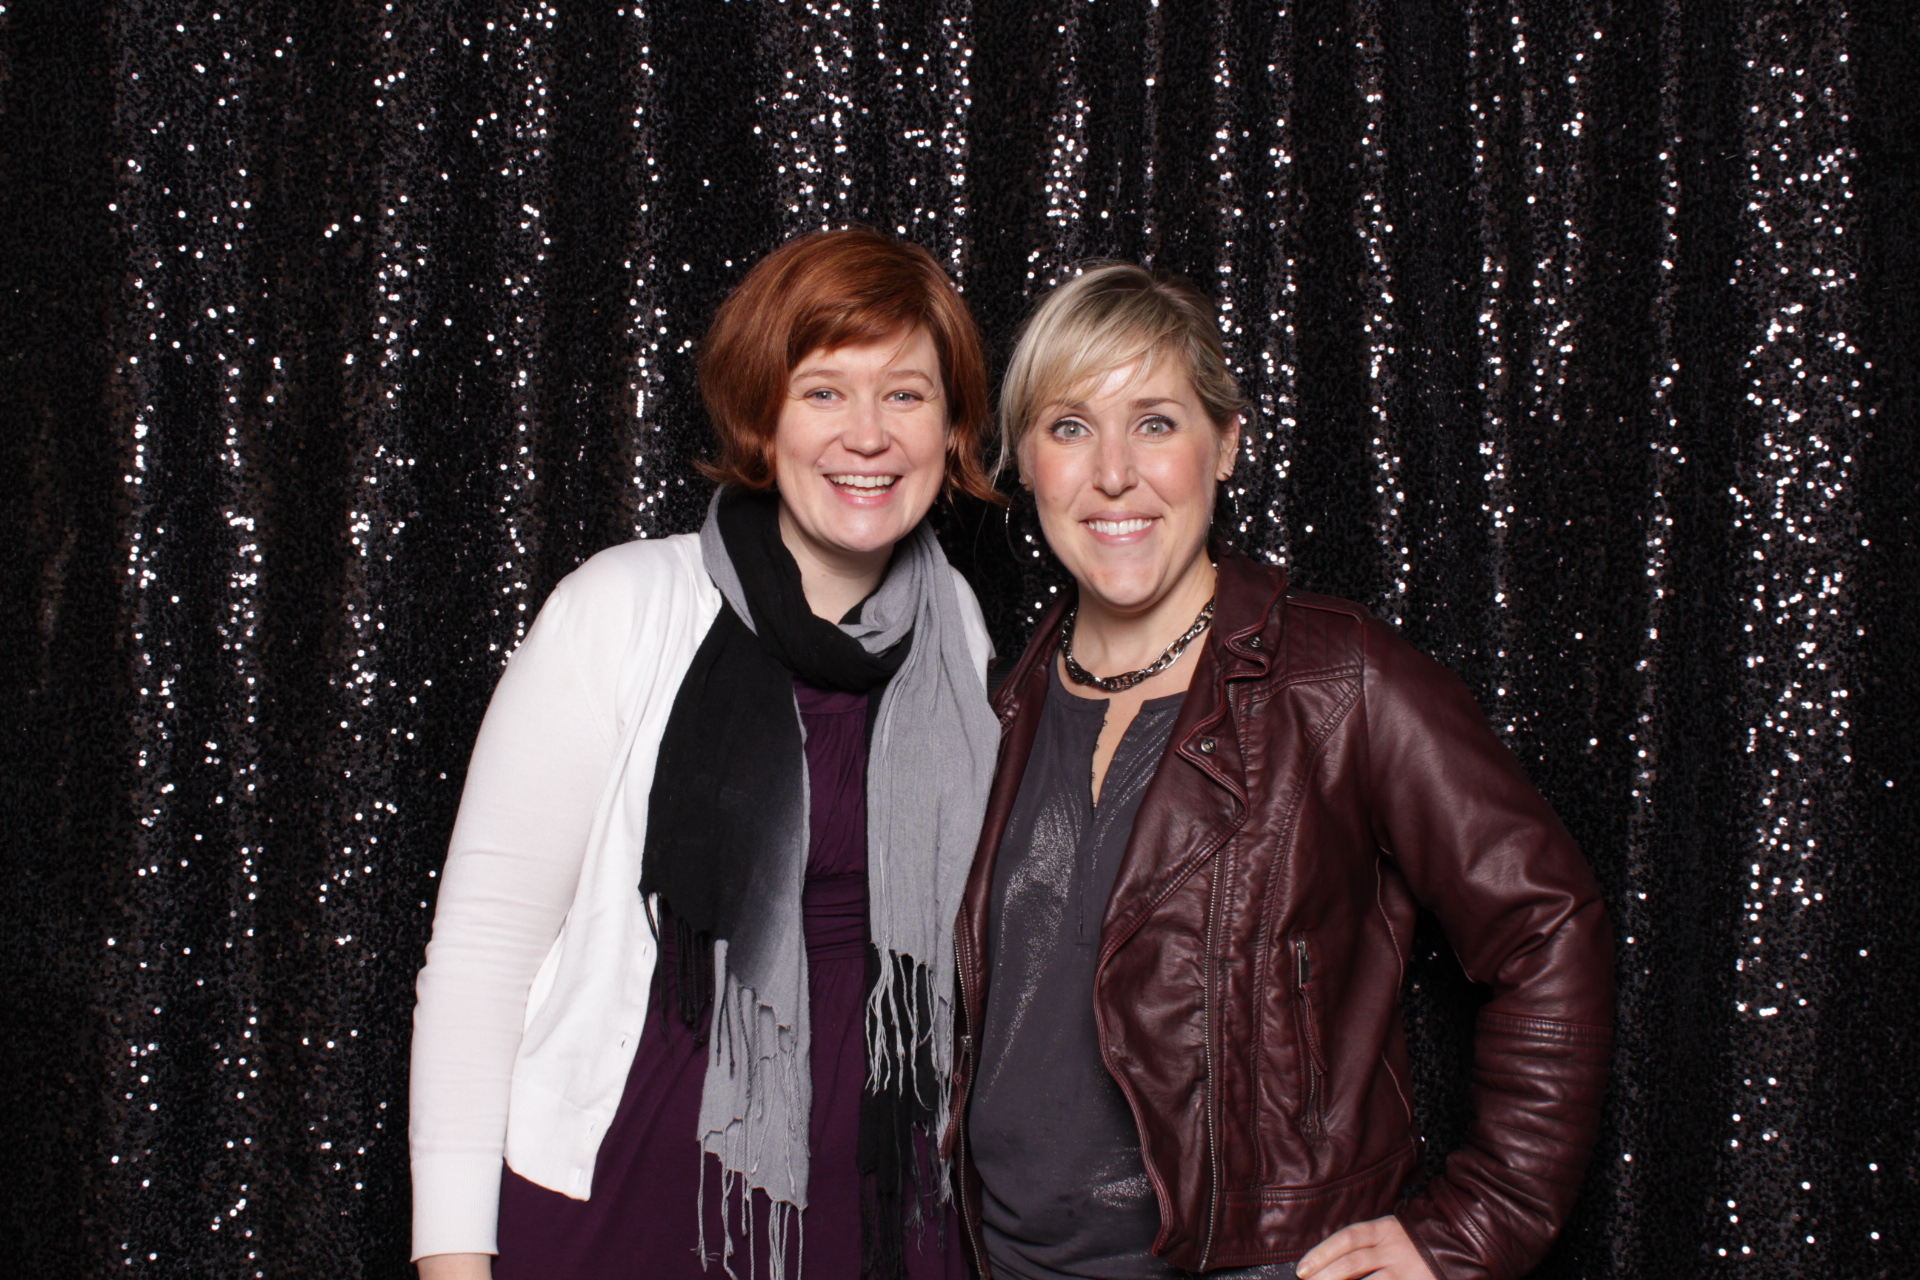 Minneapolis_birthday_party_photo_booth_rentals (12).jpg